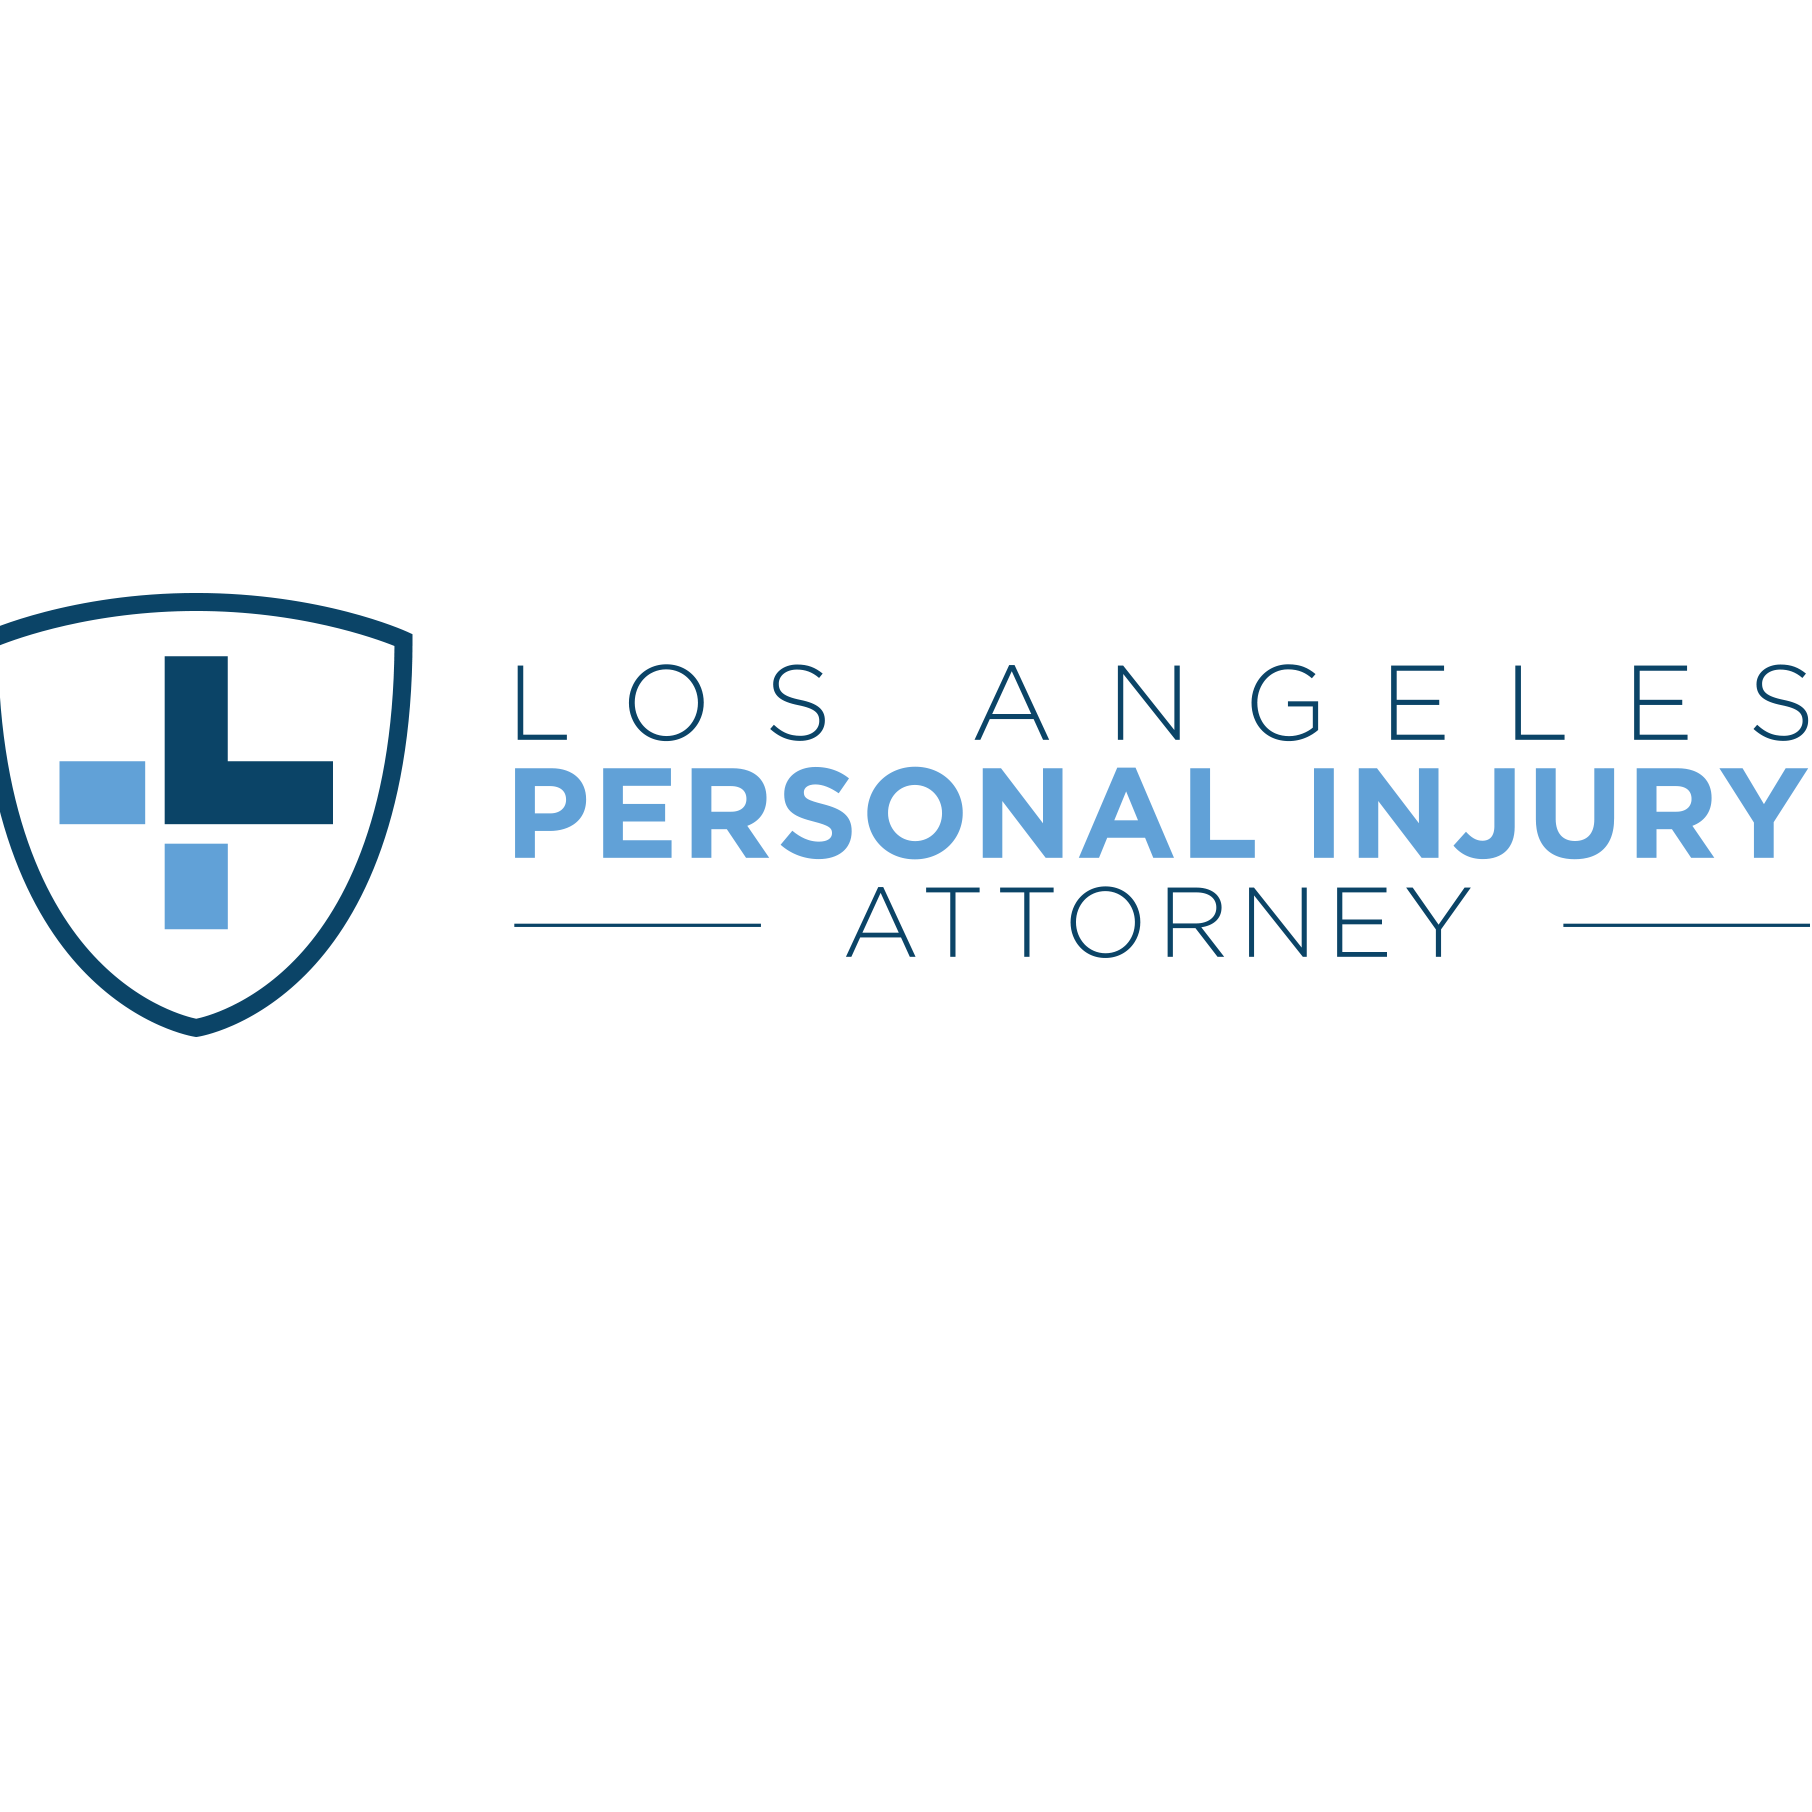 Los Angeles Personal Injury Attorney image 2